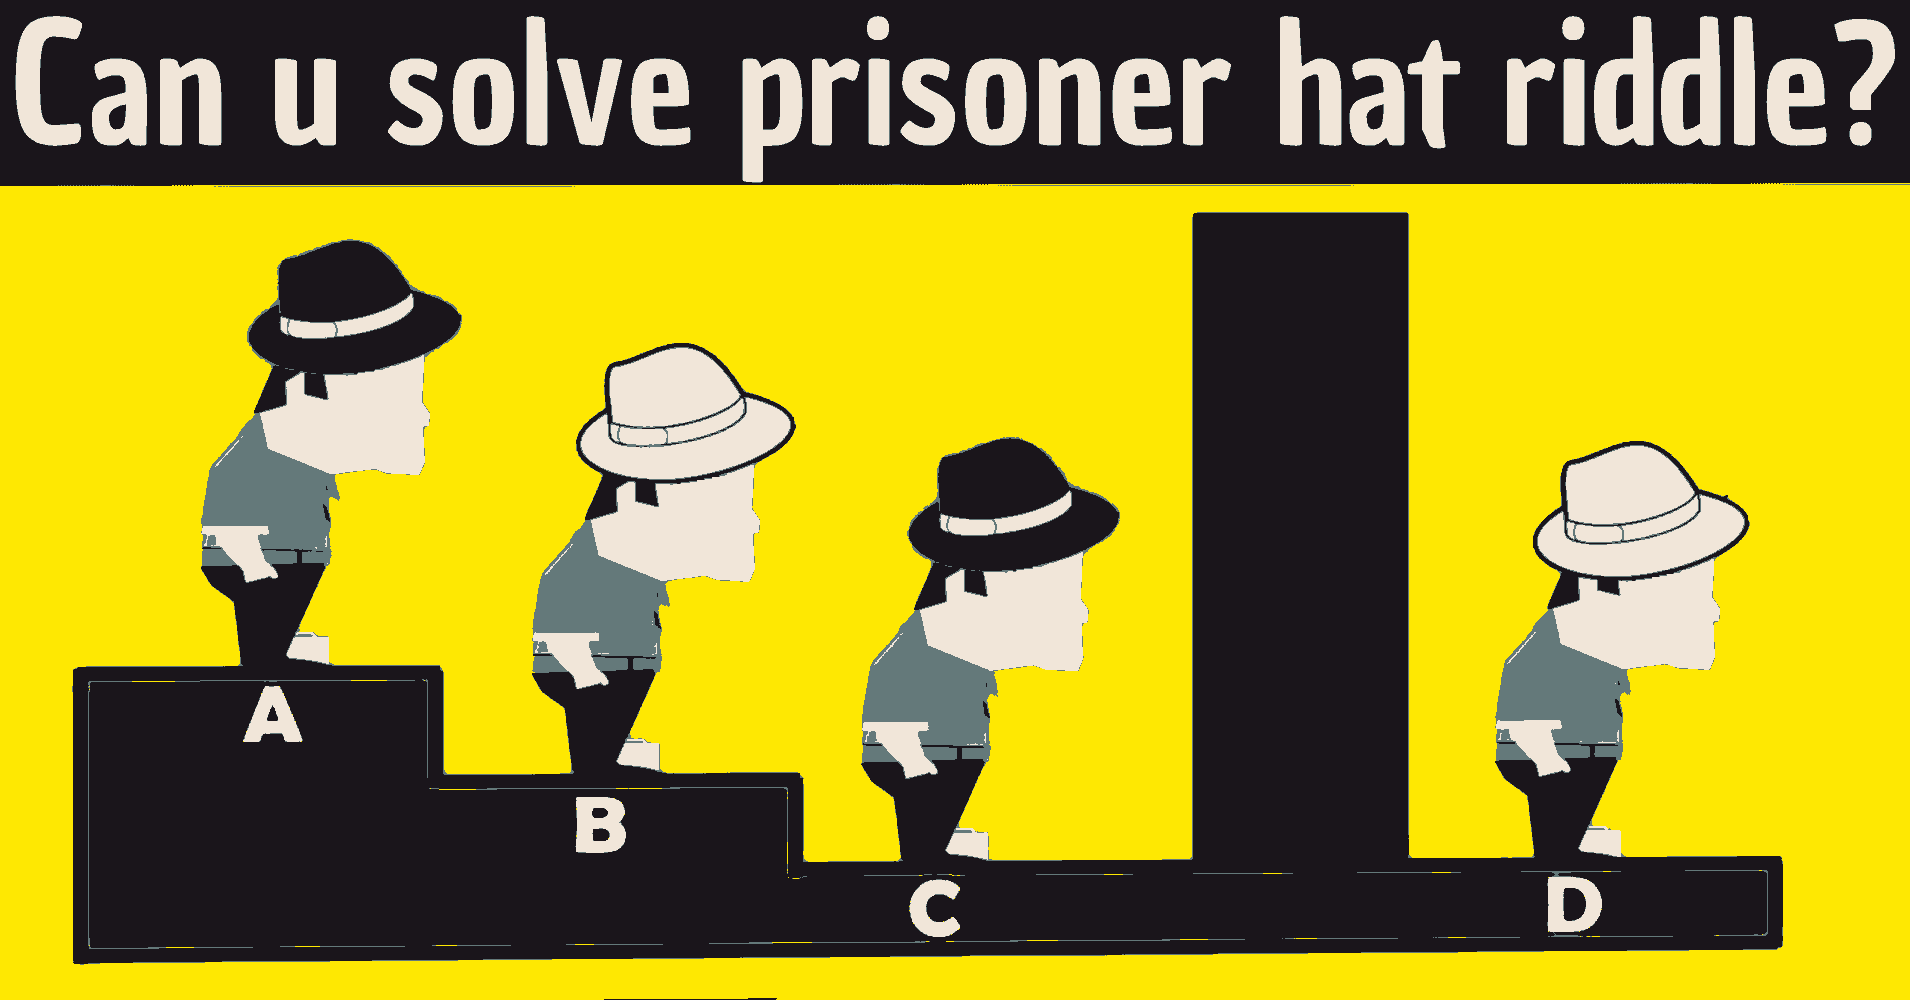 the prisoner hat riddle / the prisoner hat riddle answer / prisoner riddle black white hat / 4 hats riddle answer / 4 prisoner hat riddle answer / google prisoner hat riddle / what is the answer to the prisoner hat riddle / answer to the prisoner hat riddle / google prisoner riddle